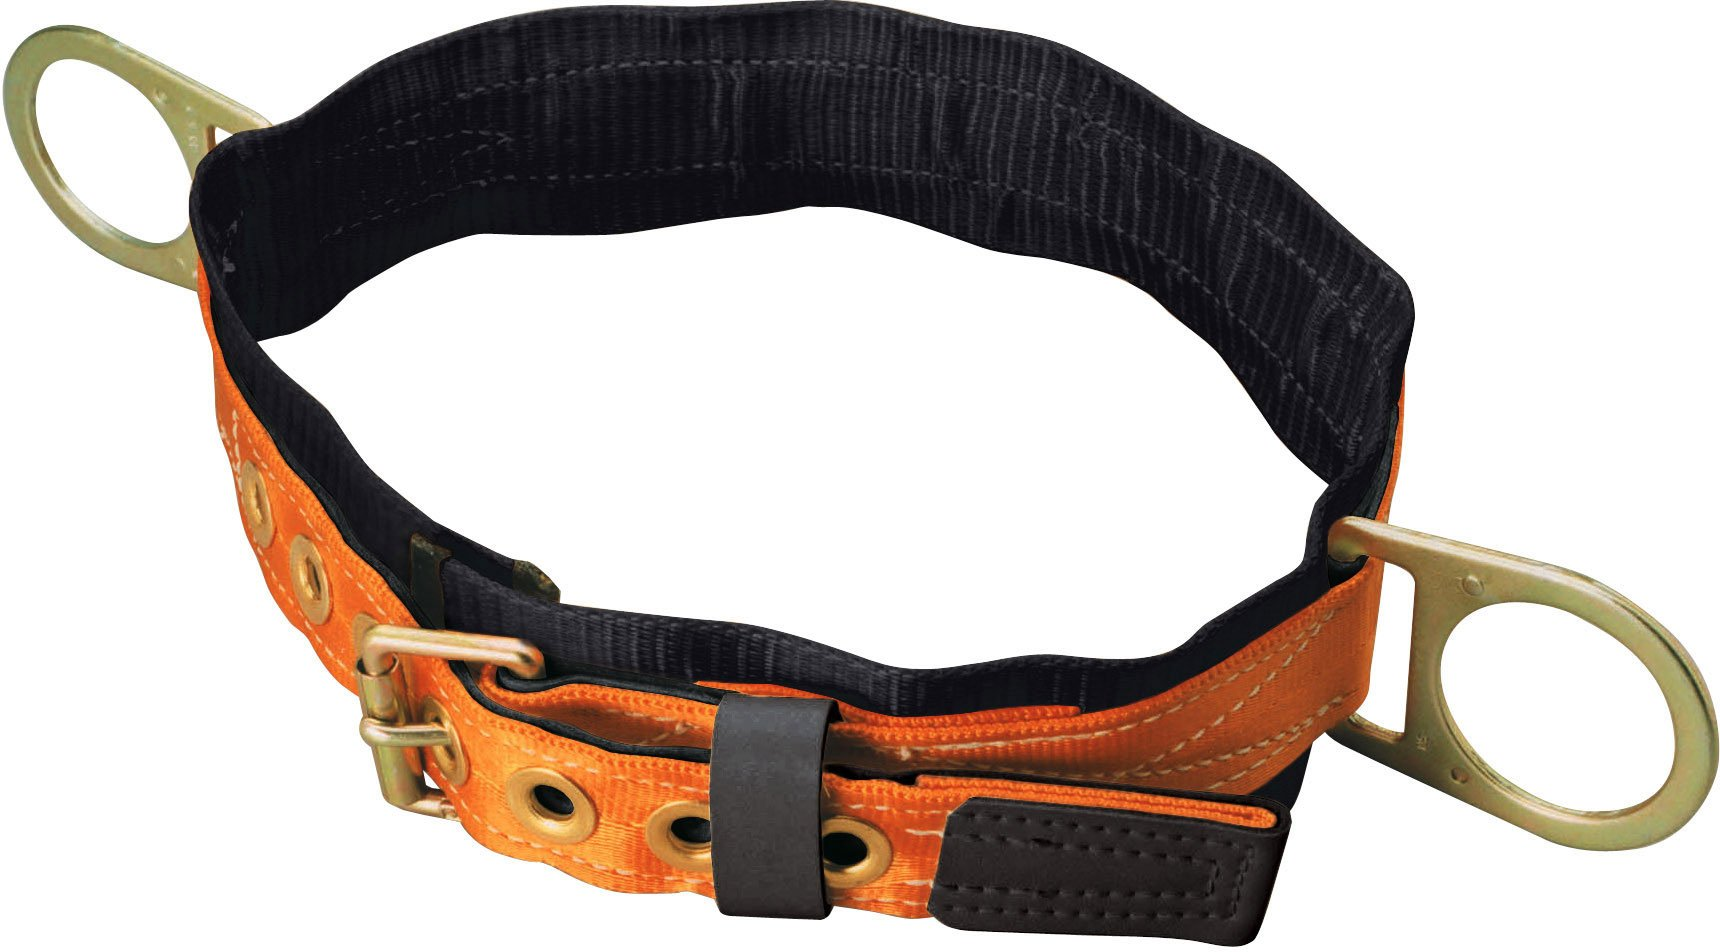 Titan Tongue Buckle Body Belt with Side D-Rings and 3-Inch Back Pad, Large (T3320/LAF) by Honeywell